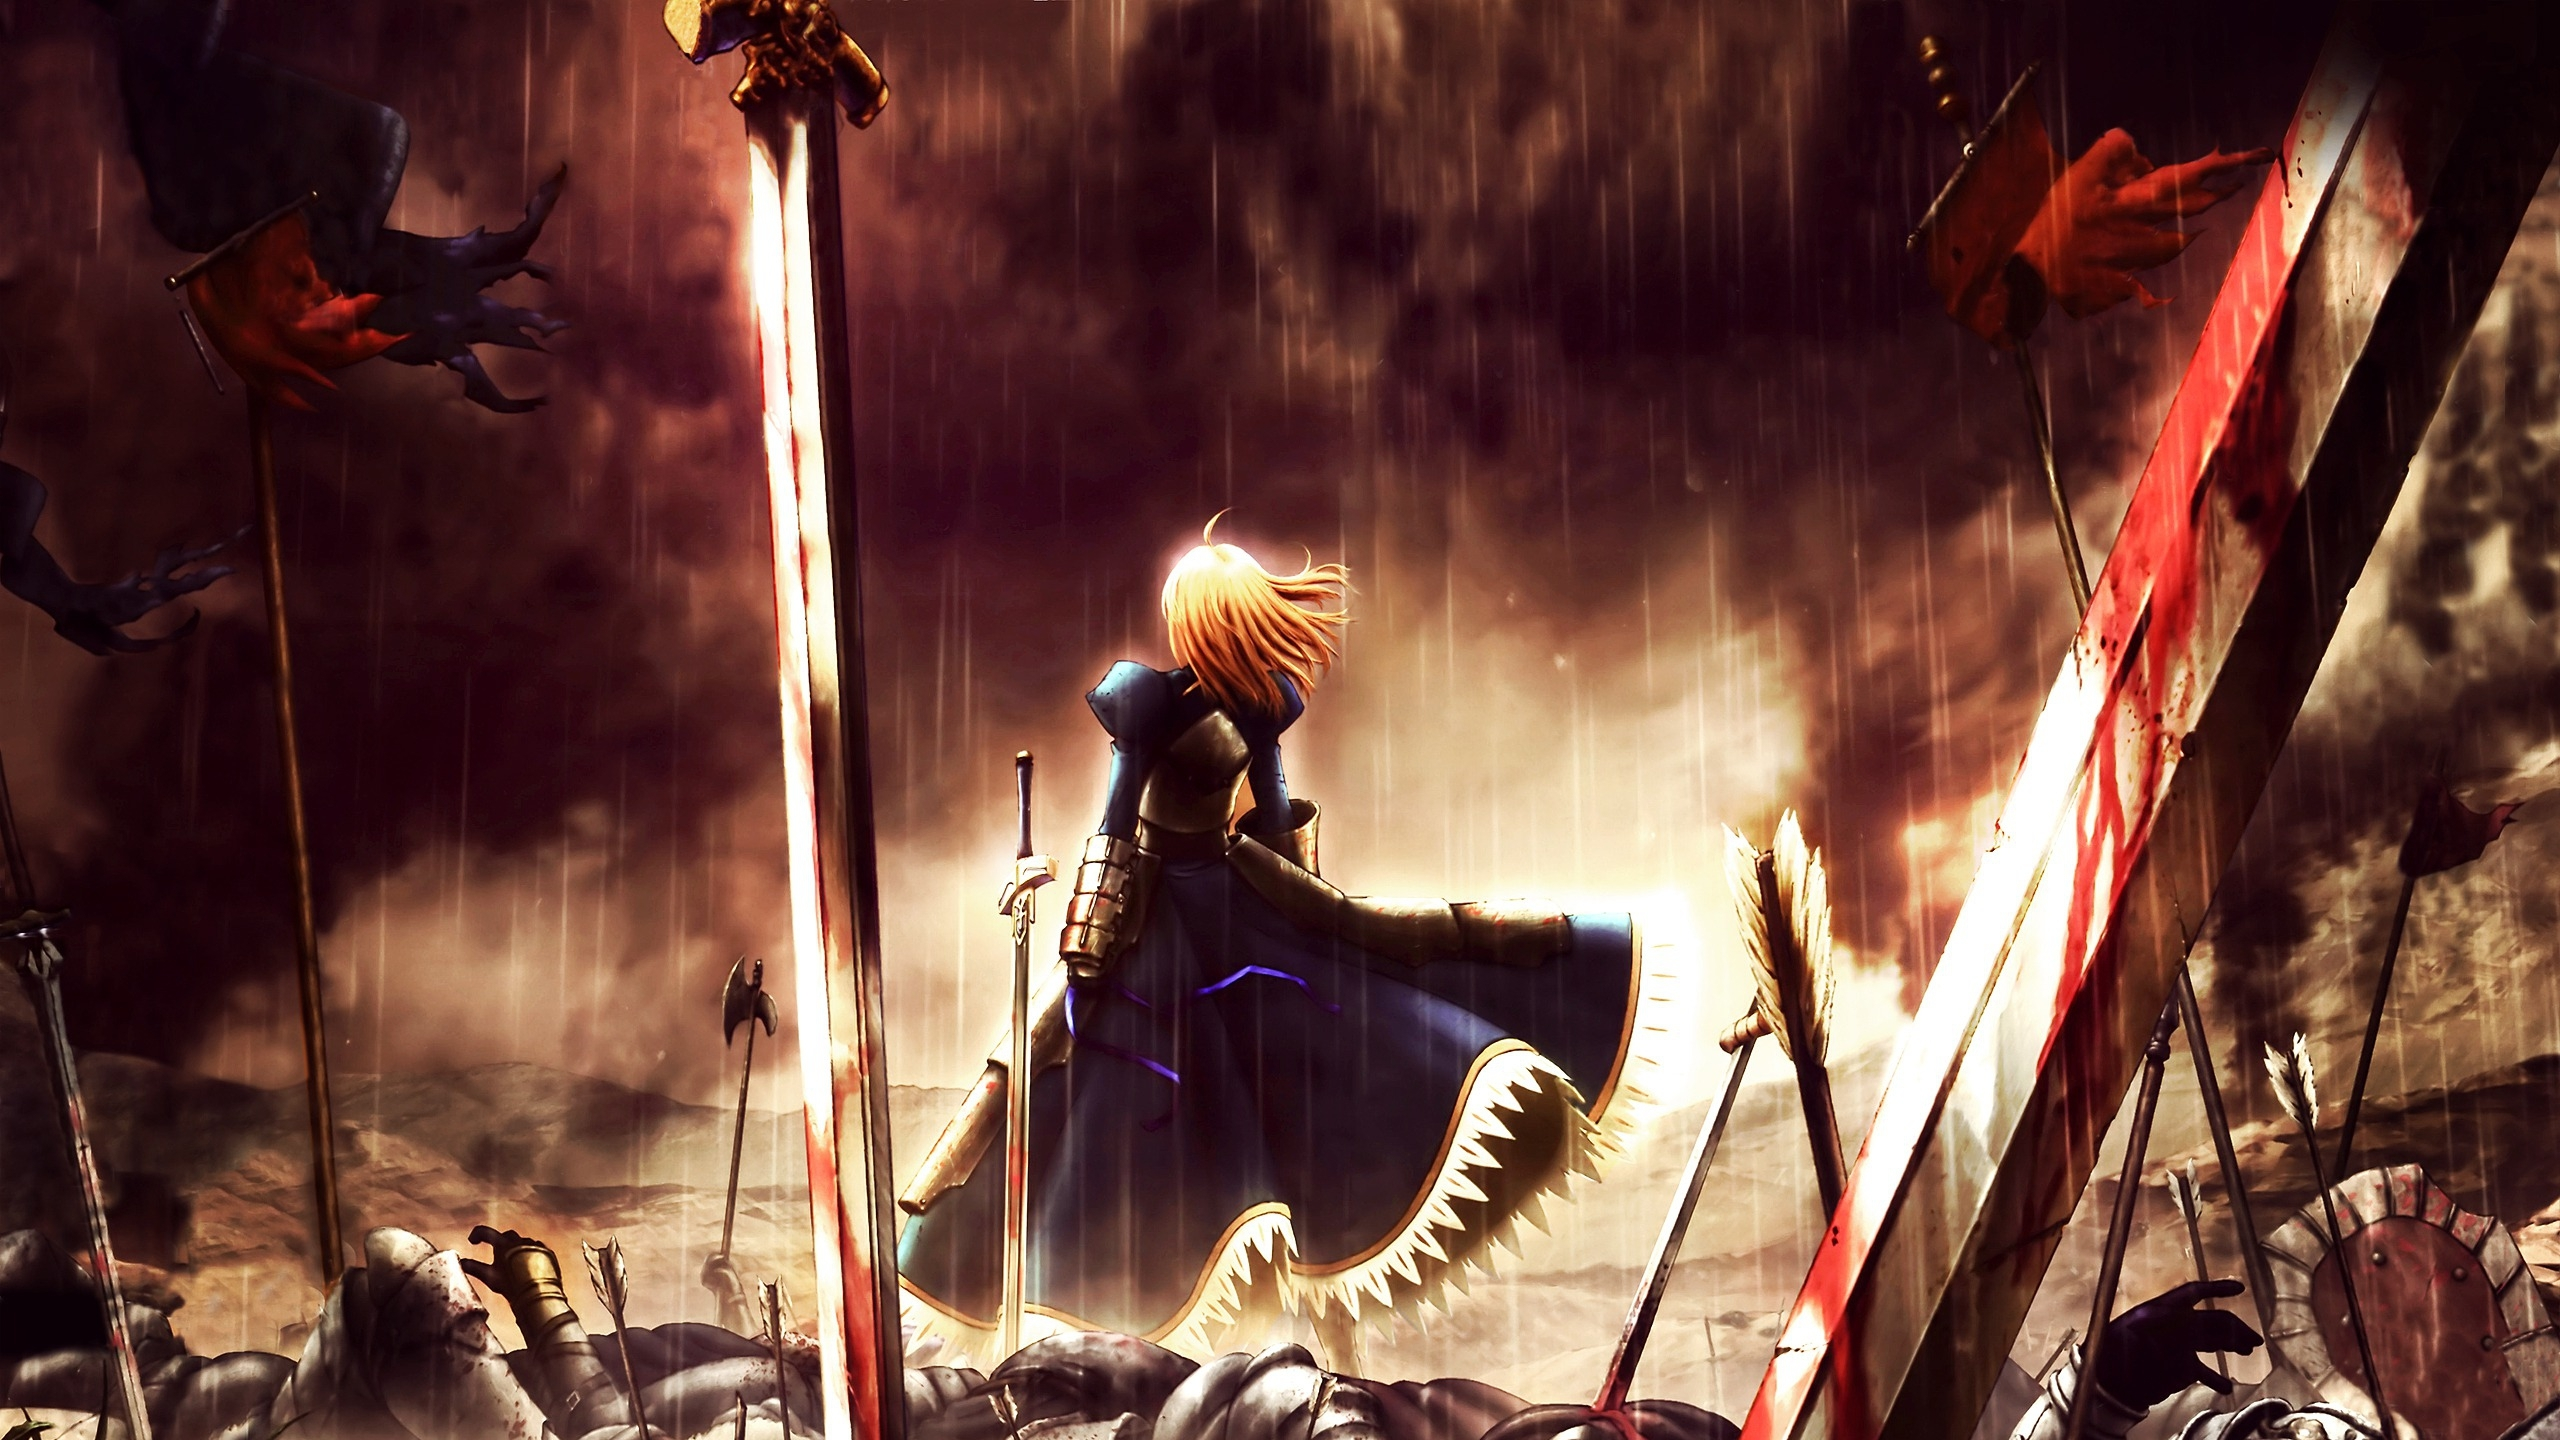 779 Saber (Fate Series) HD Wallpapers | Backgrounds - Wallpaper